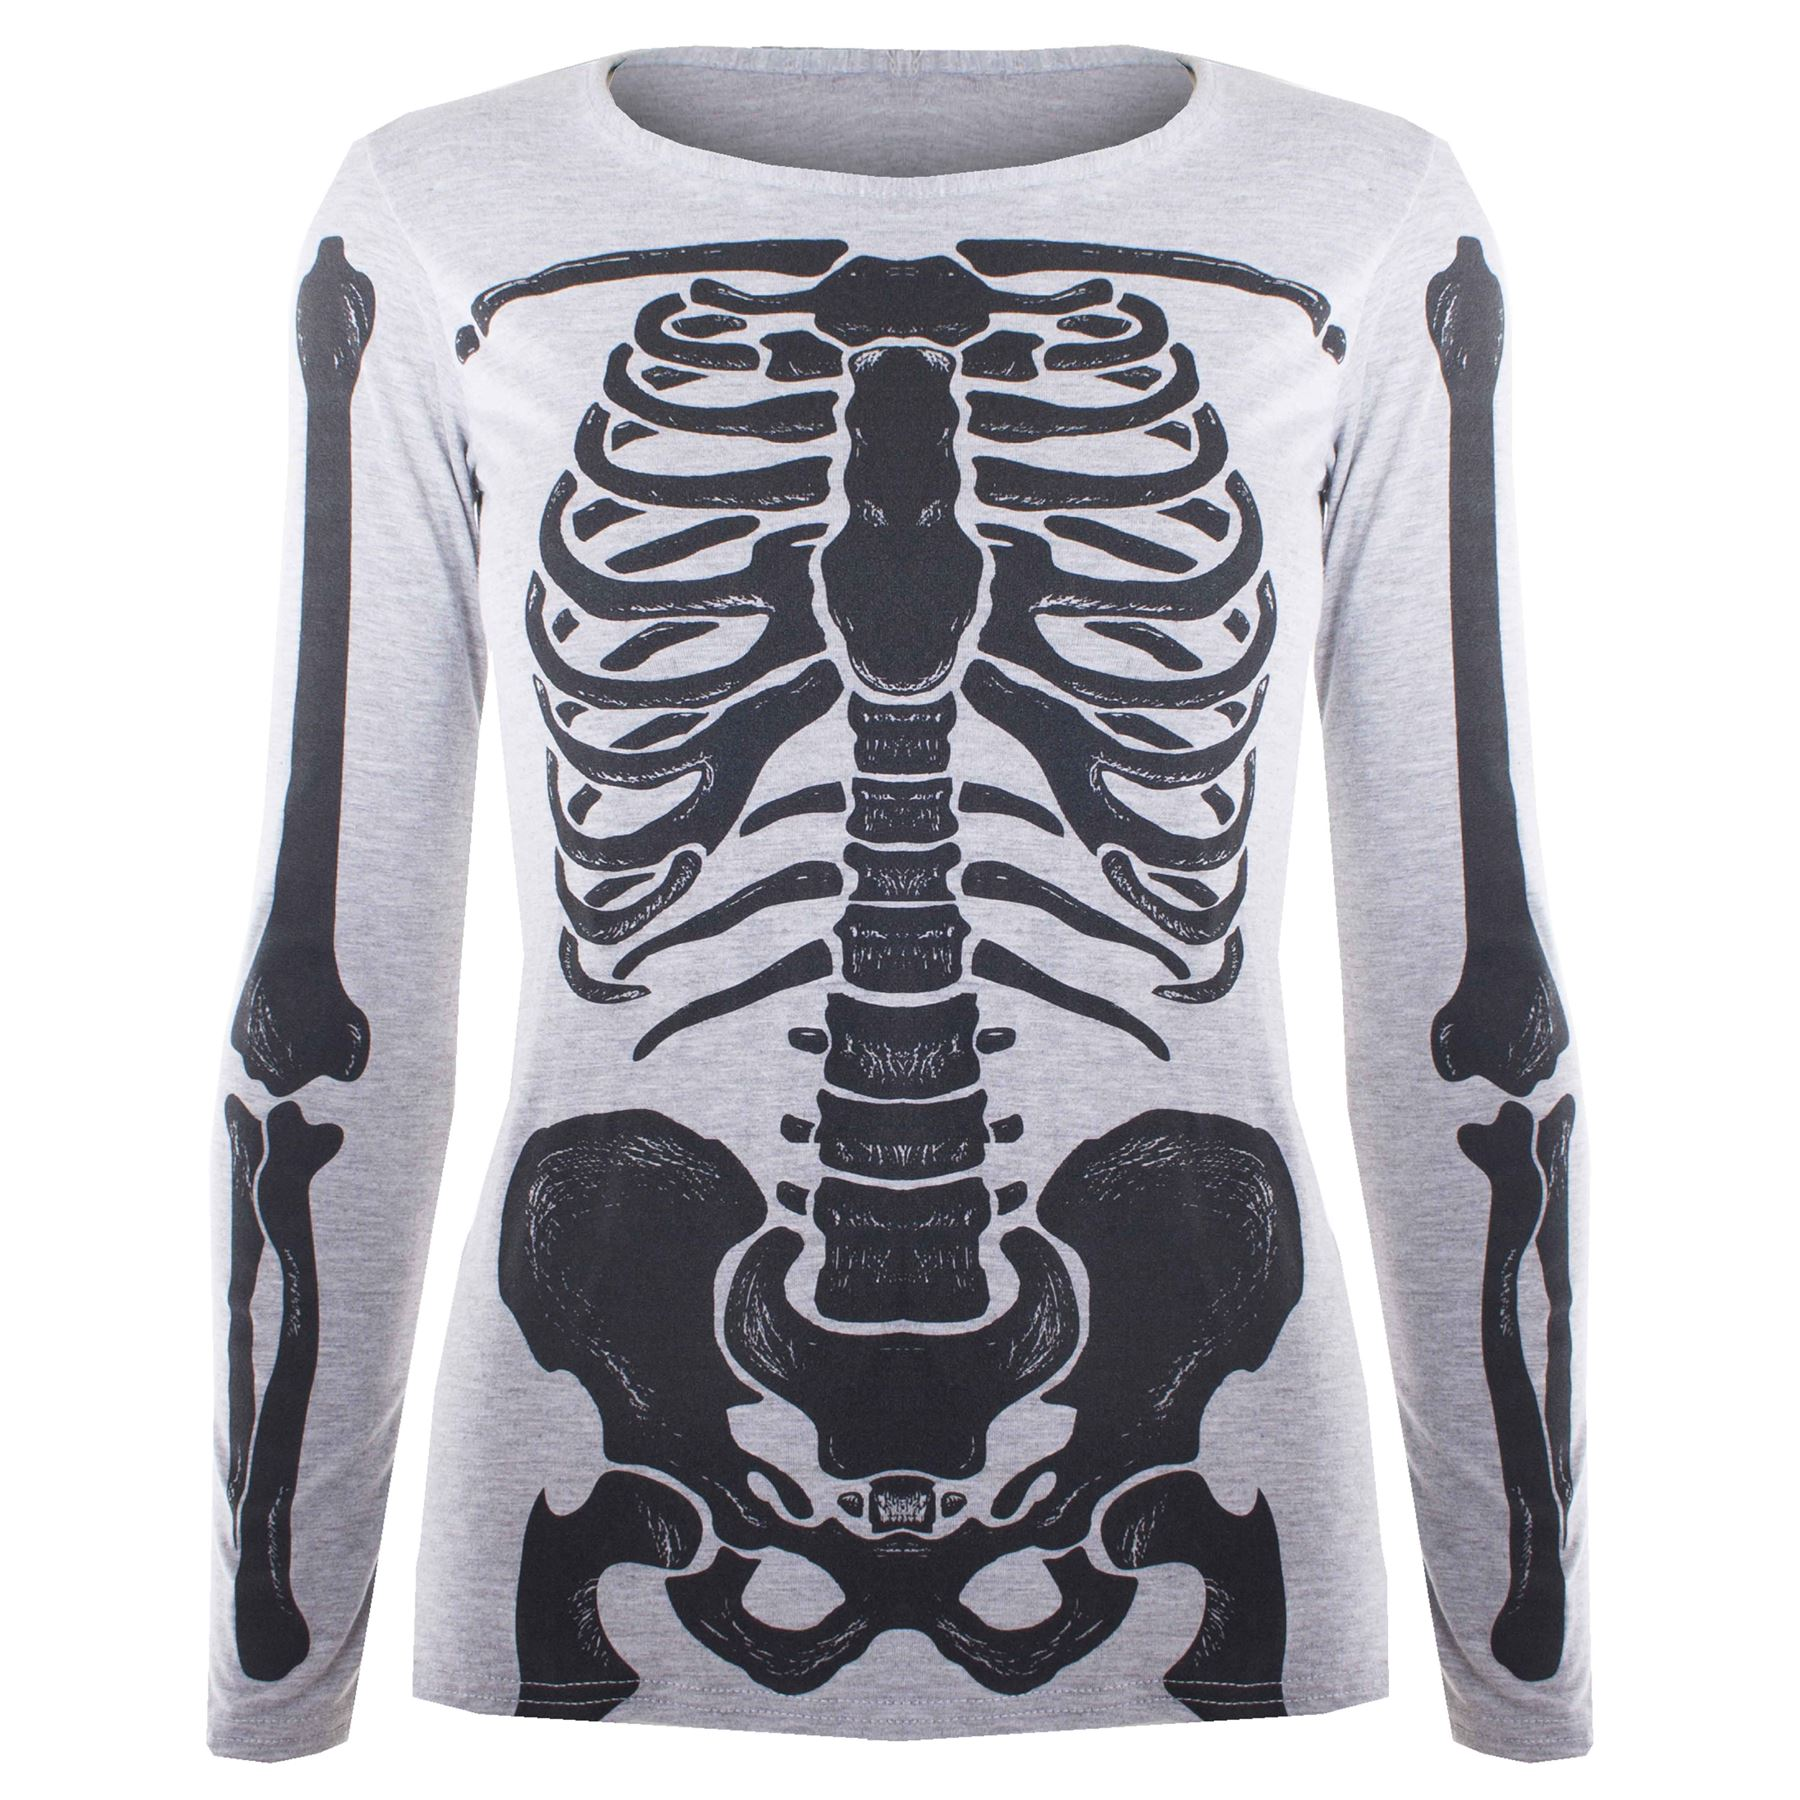 Skeleton Shirts. Showing 40 of results that match your query. Search Product Result. Womens Black and White Skeleton Leggings and T-Shirt Costume Set. Product Image. Price $ 98 - $ Women's Skeleton Leggings and T-Shirt Costume Set. Product Image. Price $ 90 - $